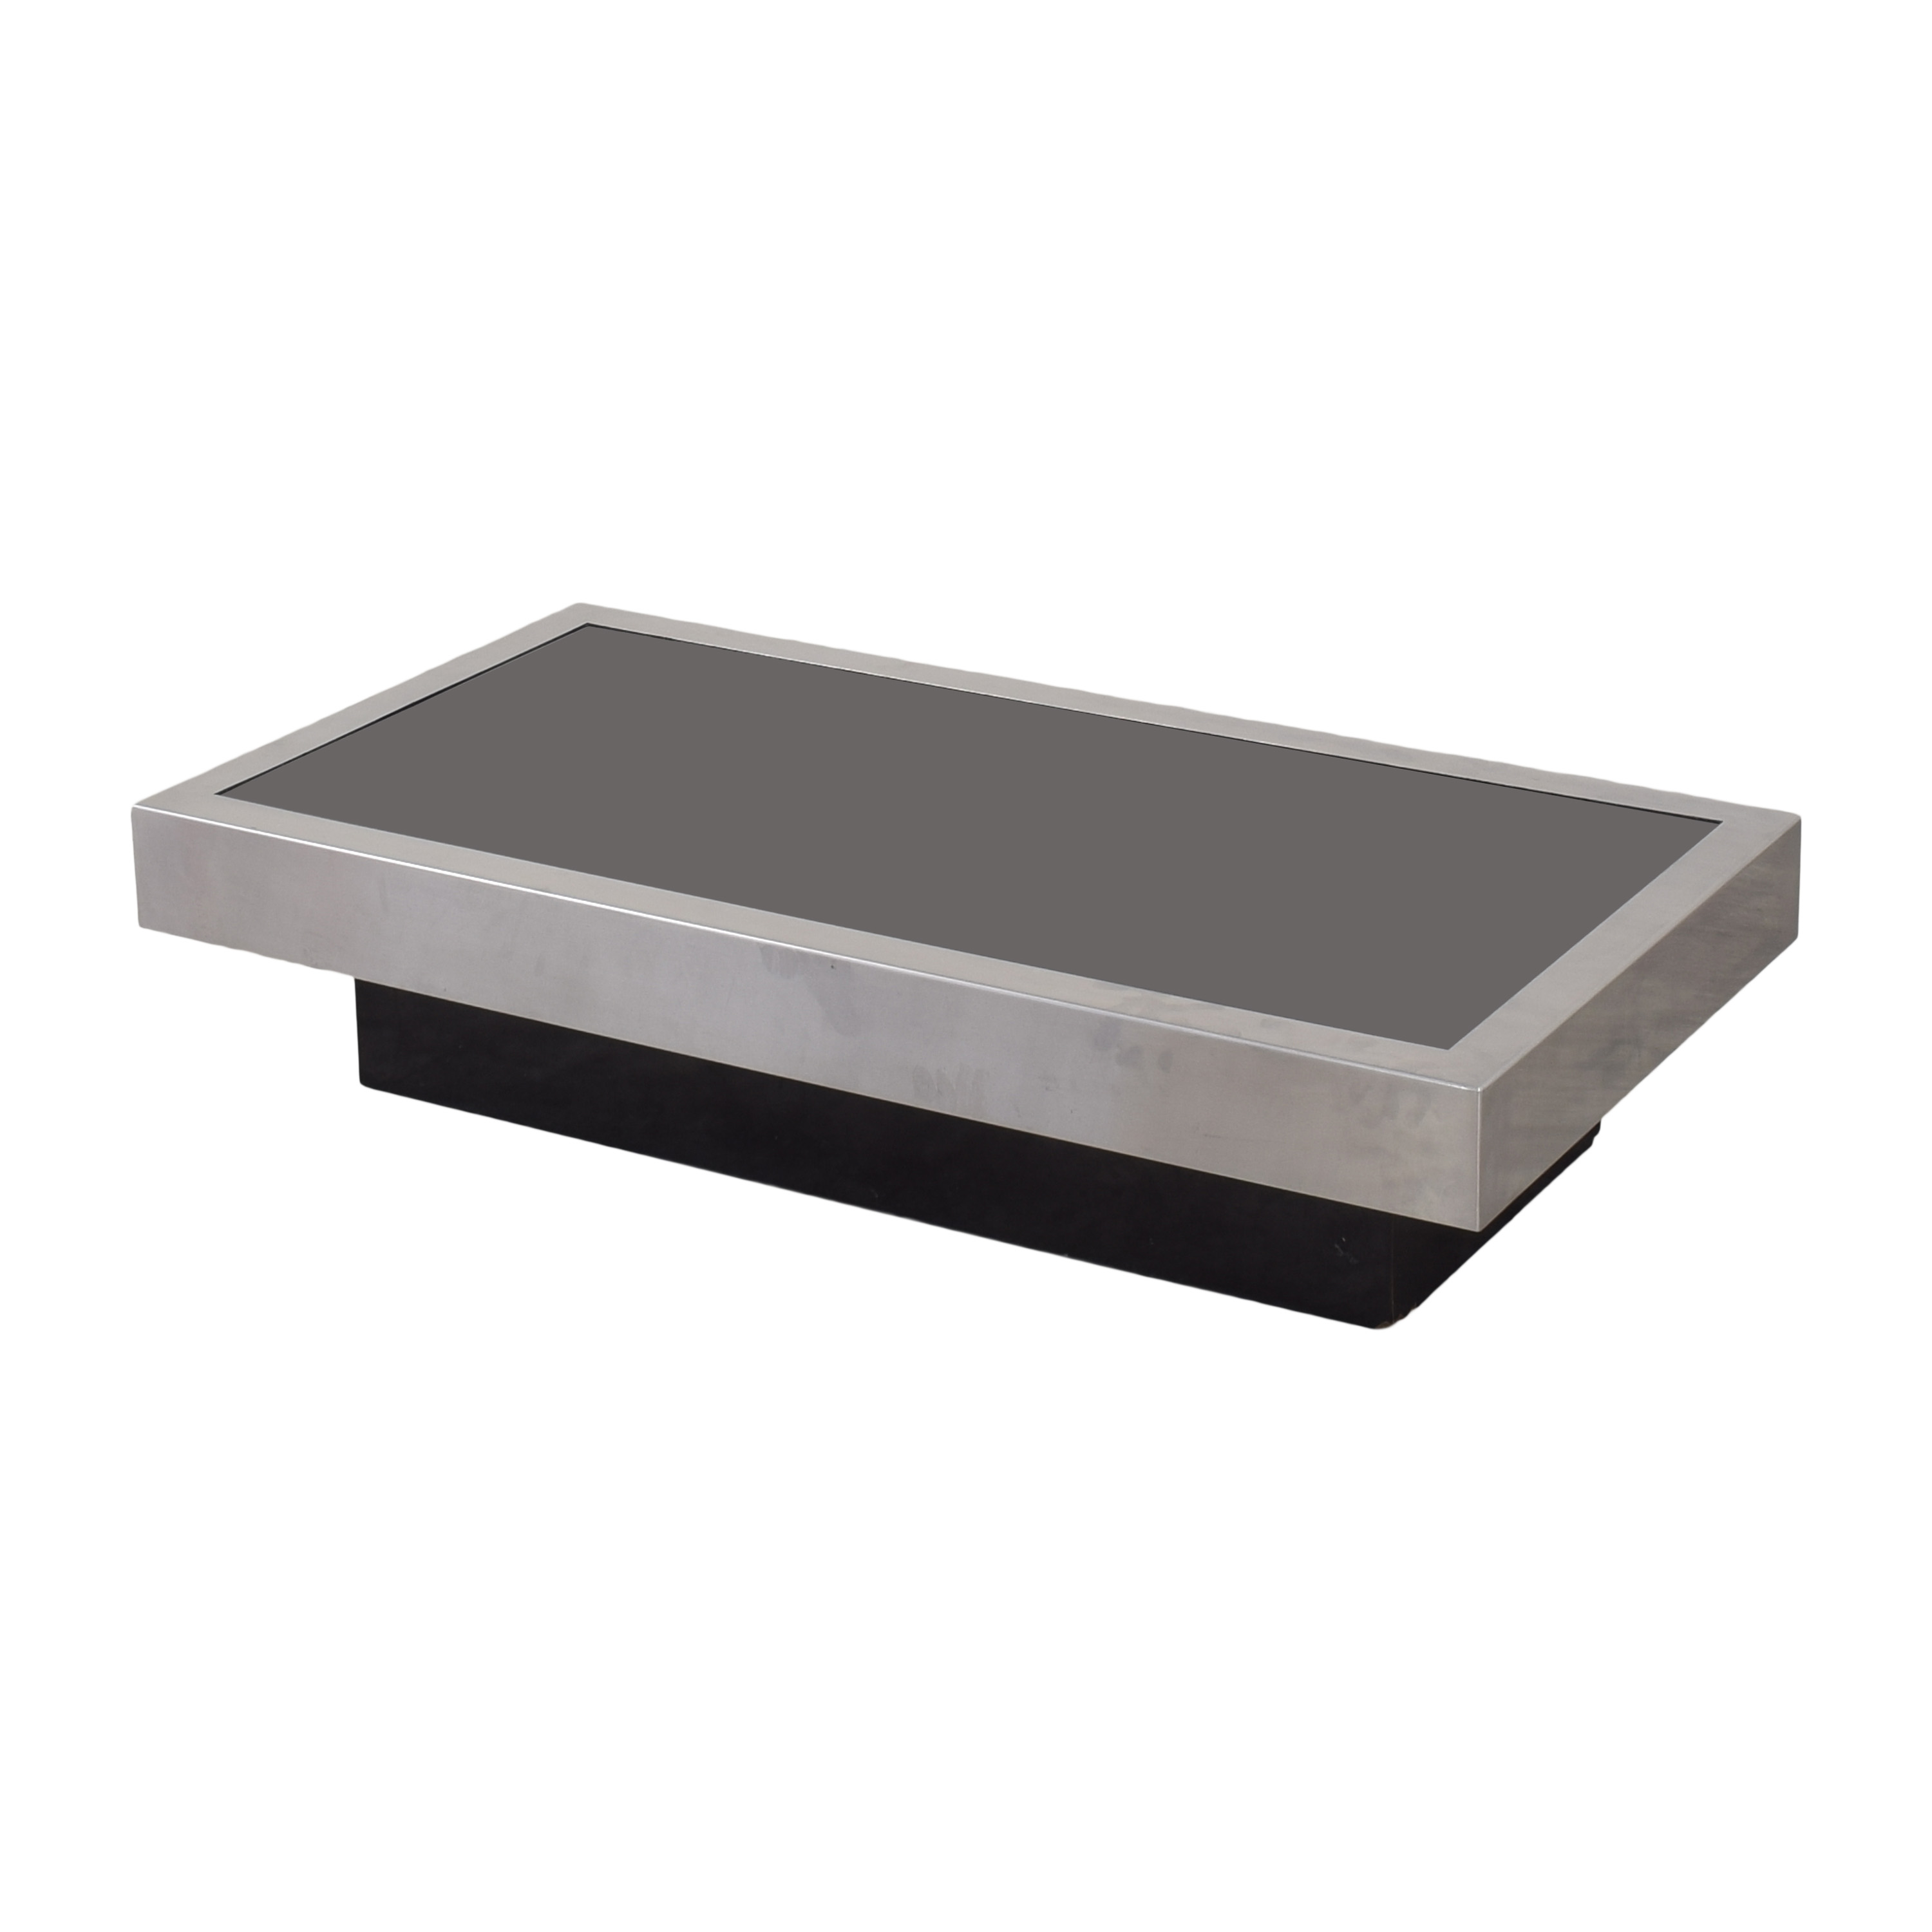 Cidue Cidue by Willy Rizzo Coffee Table on sale